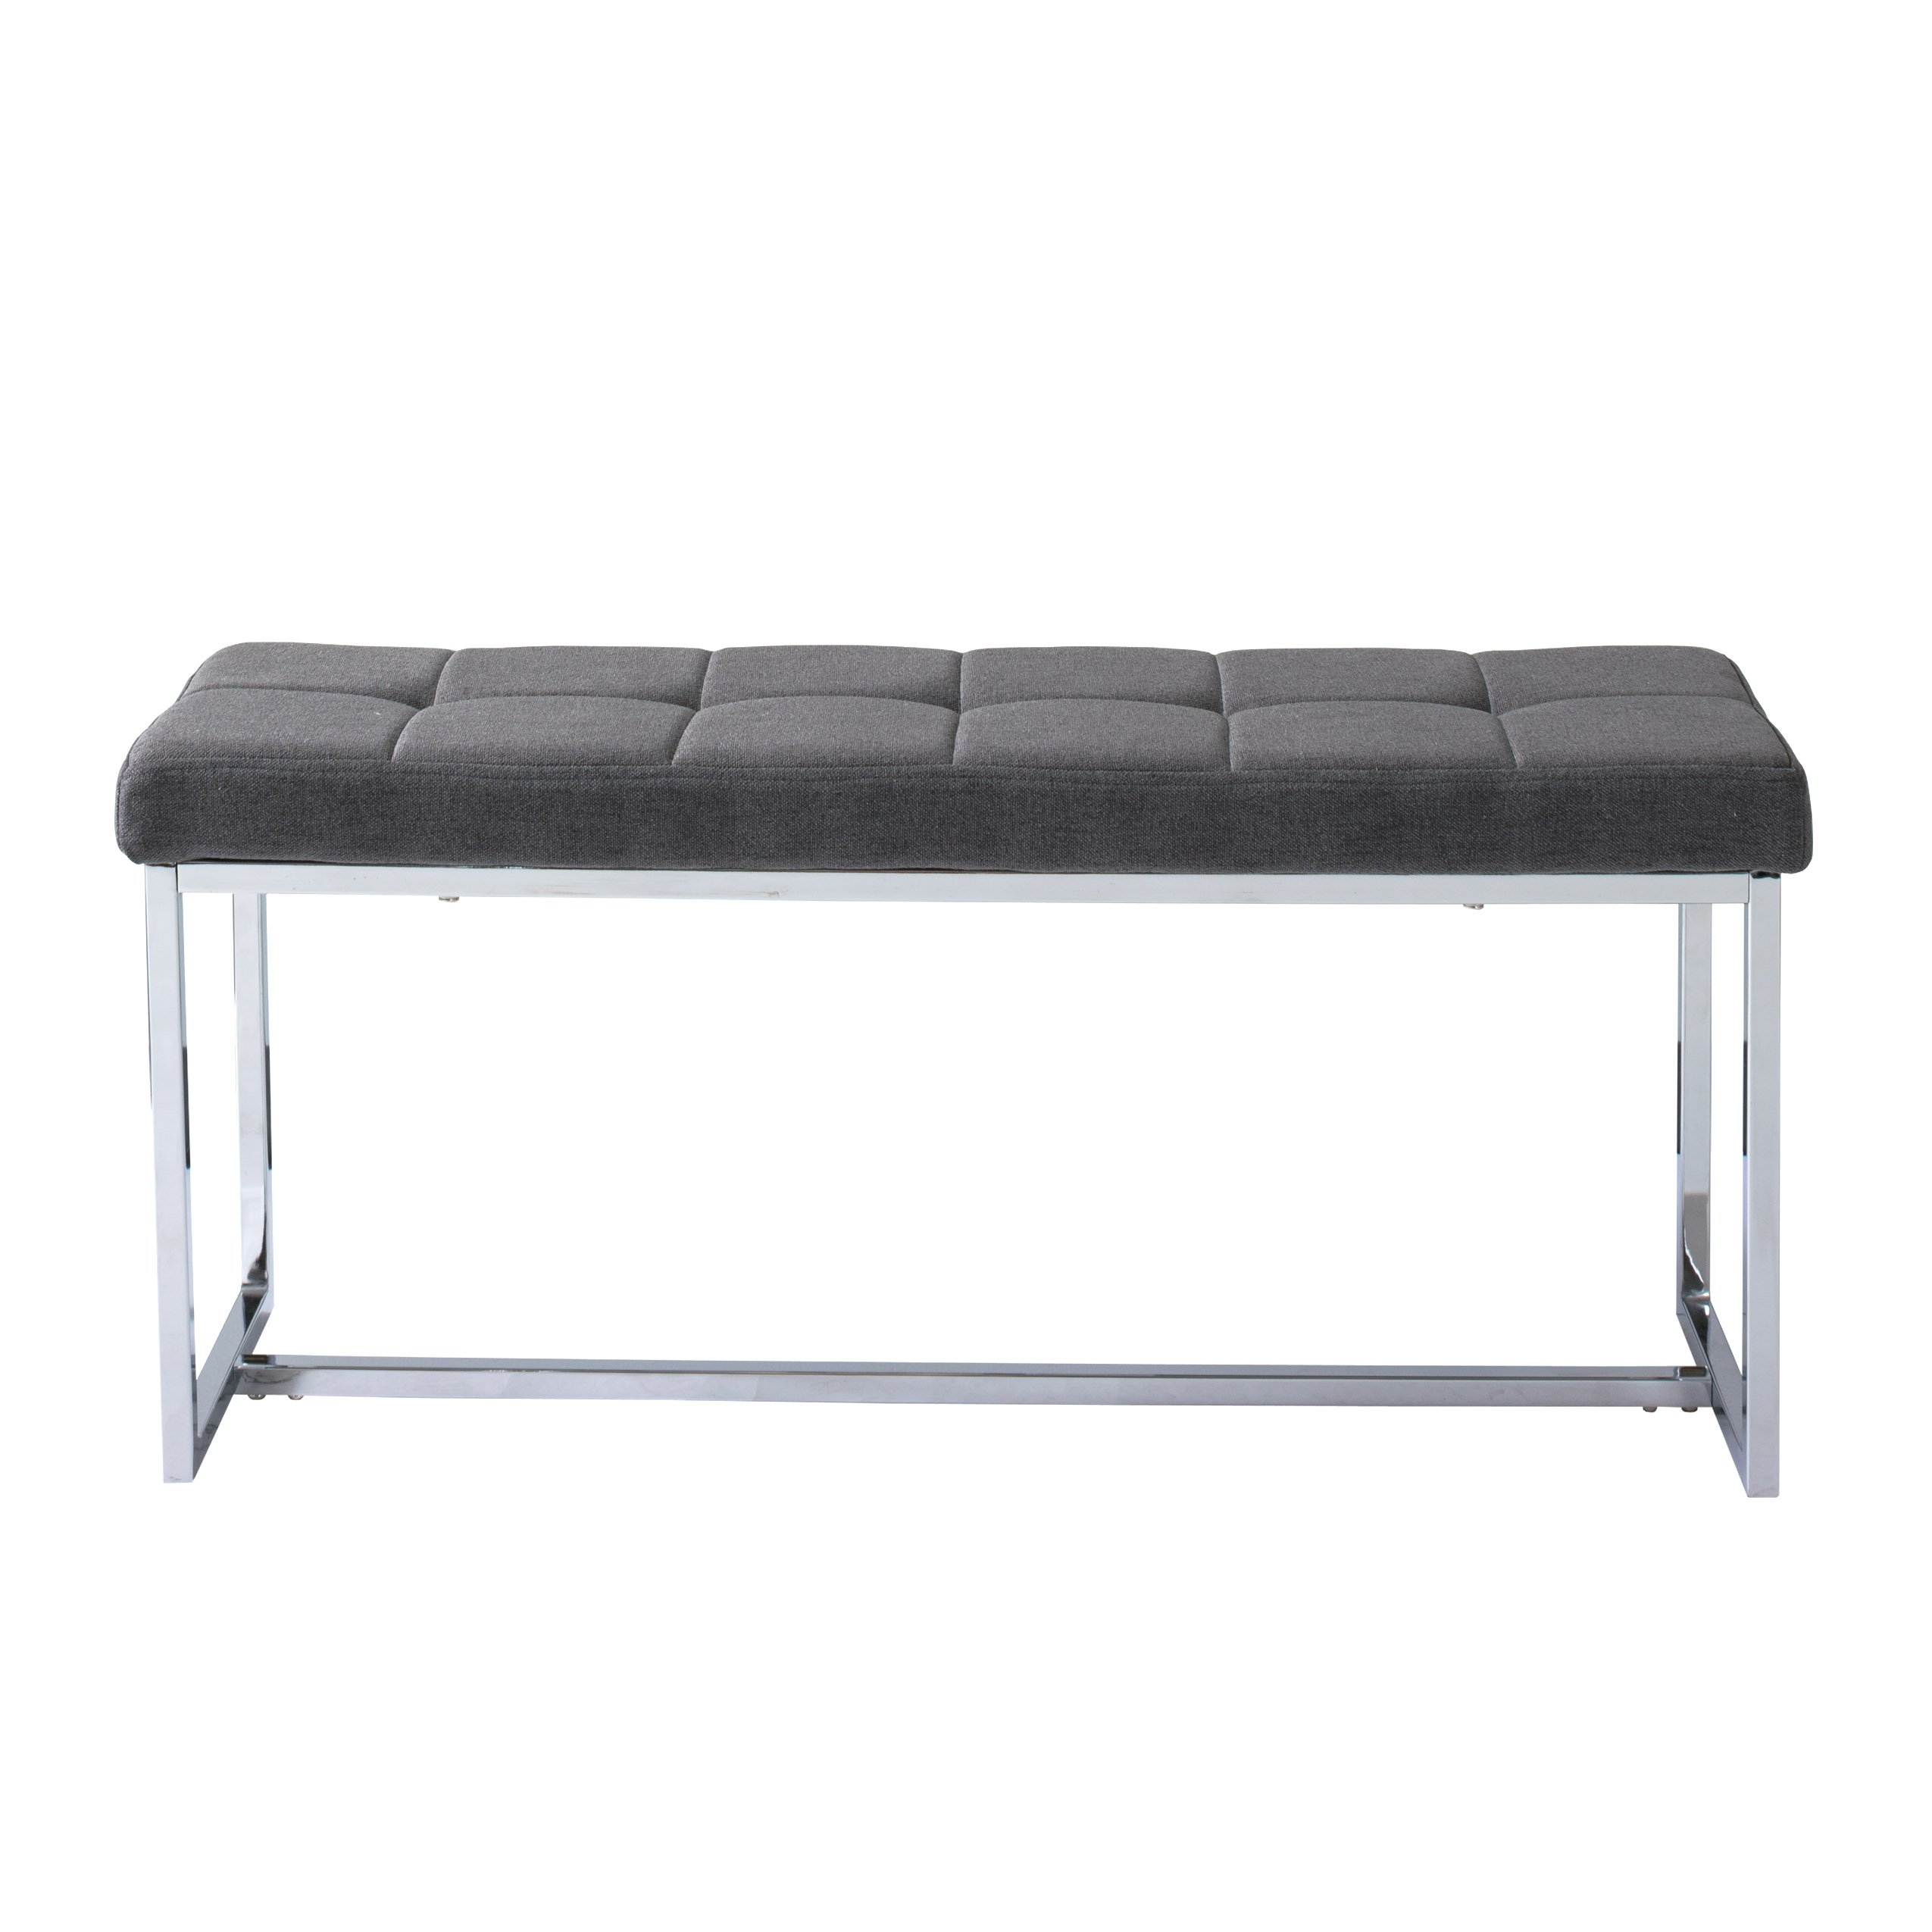 CorLiving LDF-161-O Huntington Bench Grey by CorLiving (Image #2)